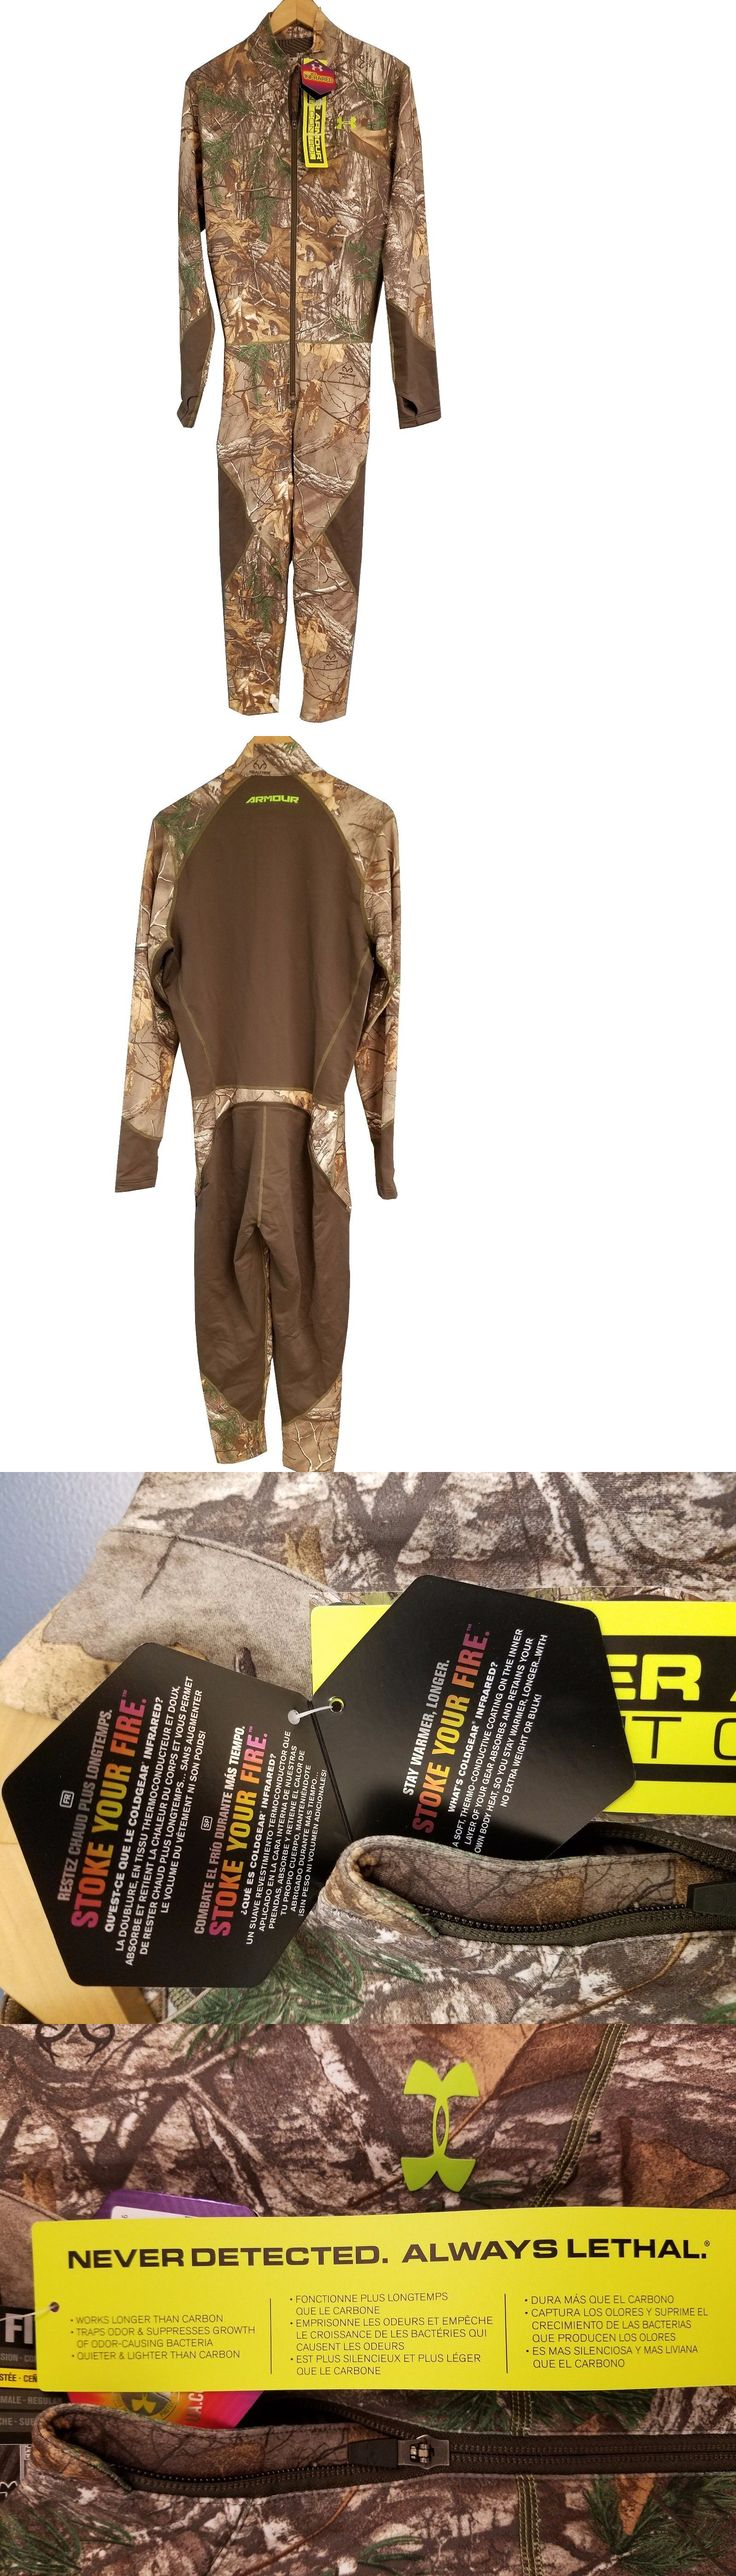 Base Layers 177867: Under Armour Coldgear® Armour Scent Control Ninja Suit, Realtree Ap Xtra -> BUY IT NOW ONLY: $149.99 on eBay!